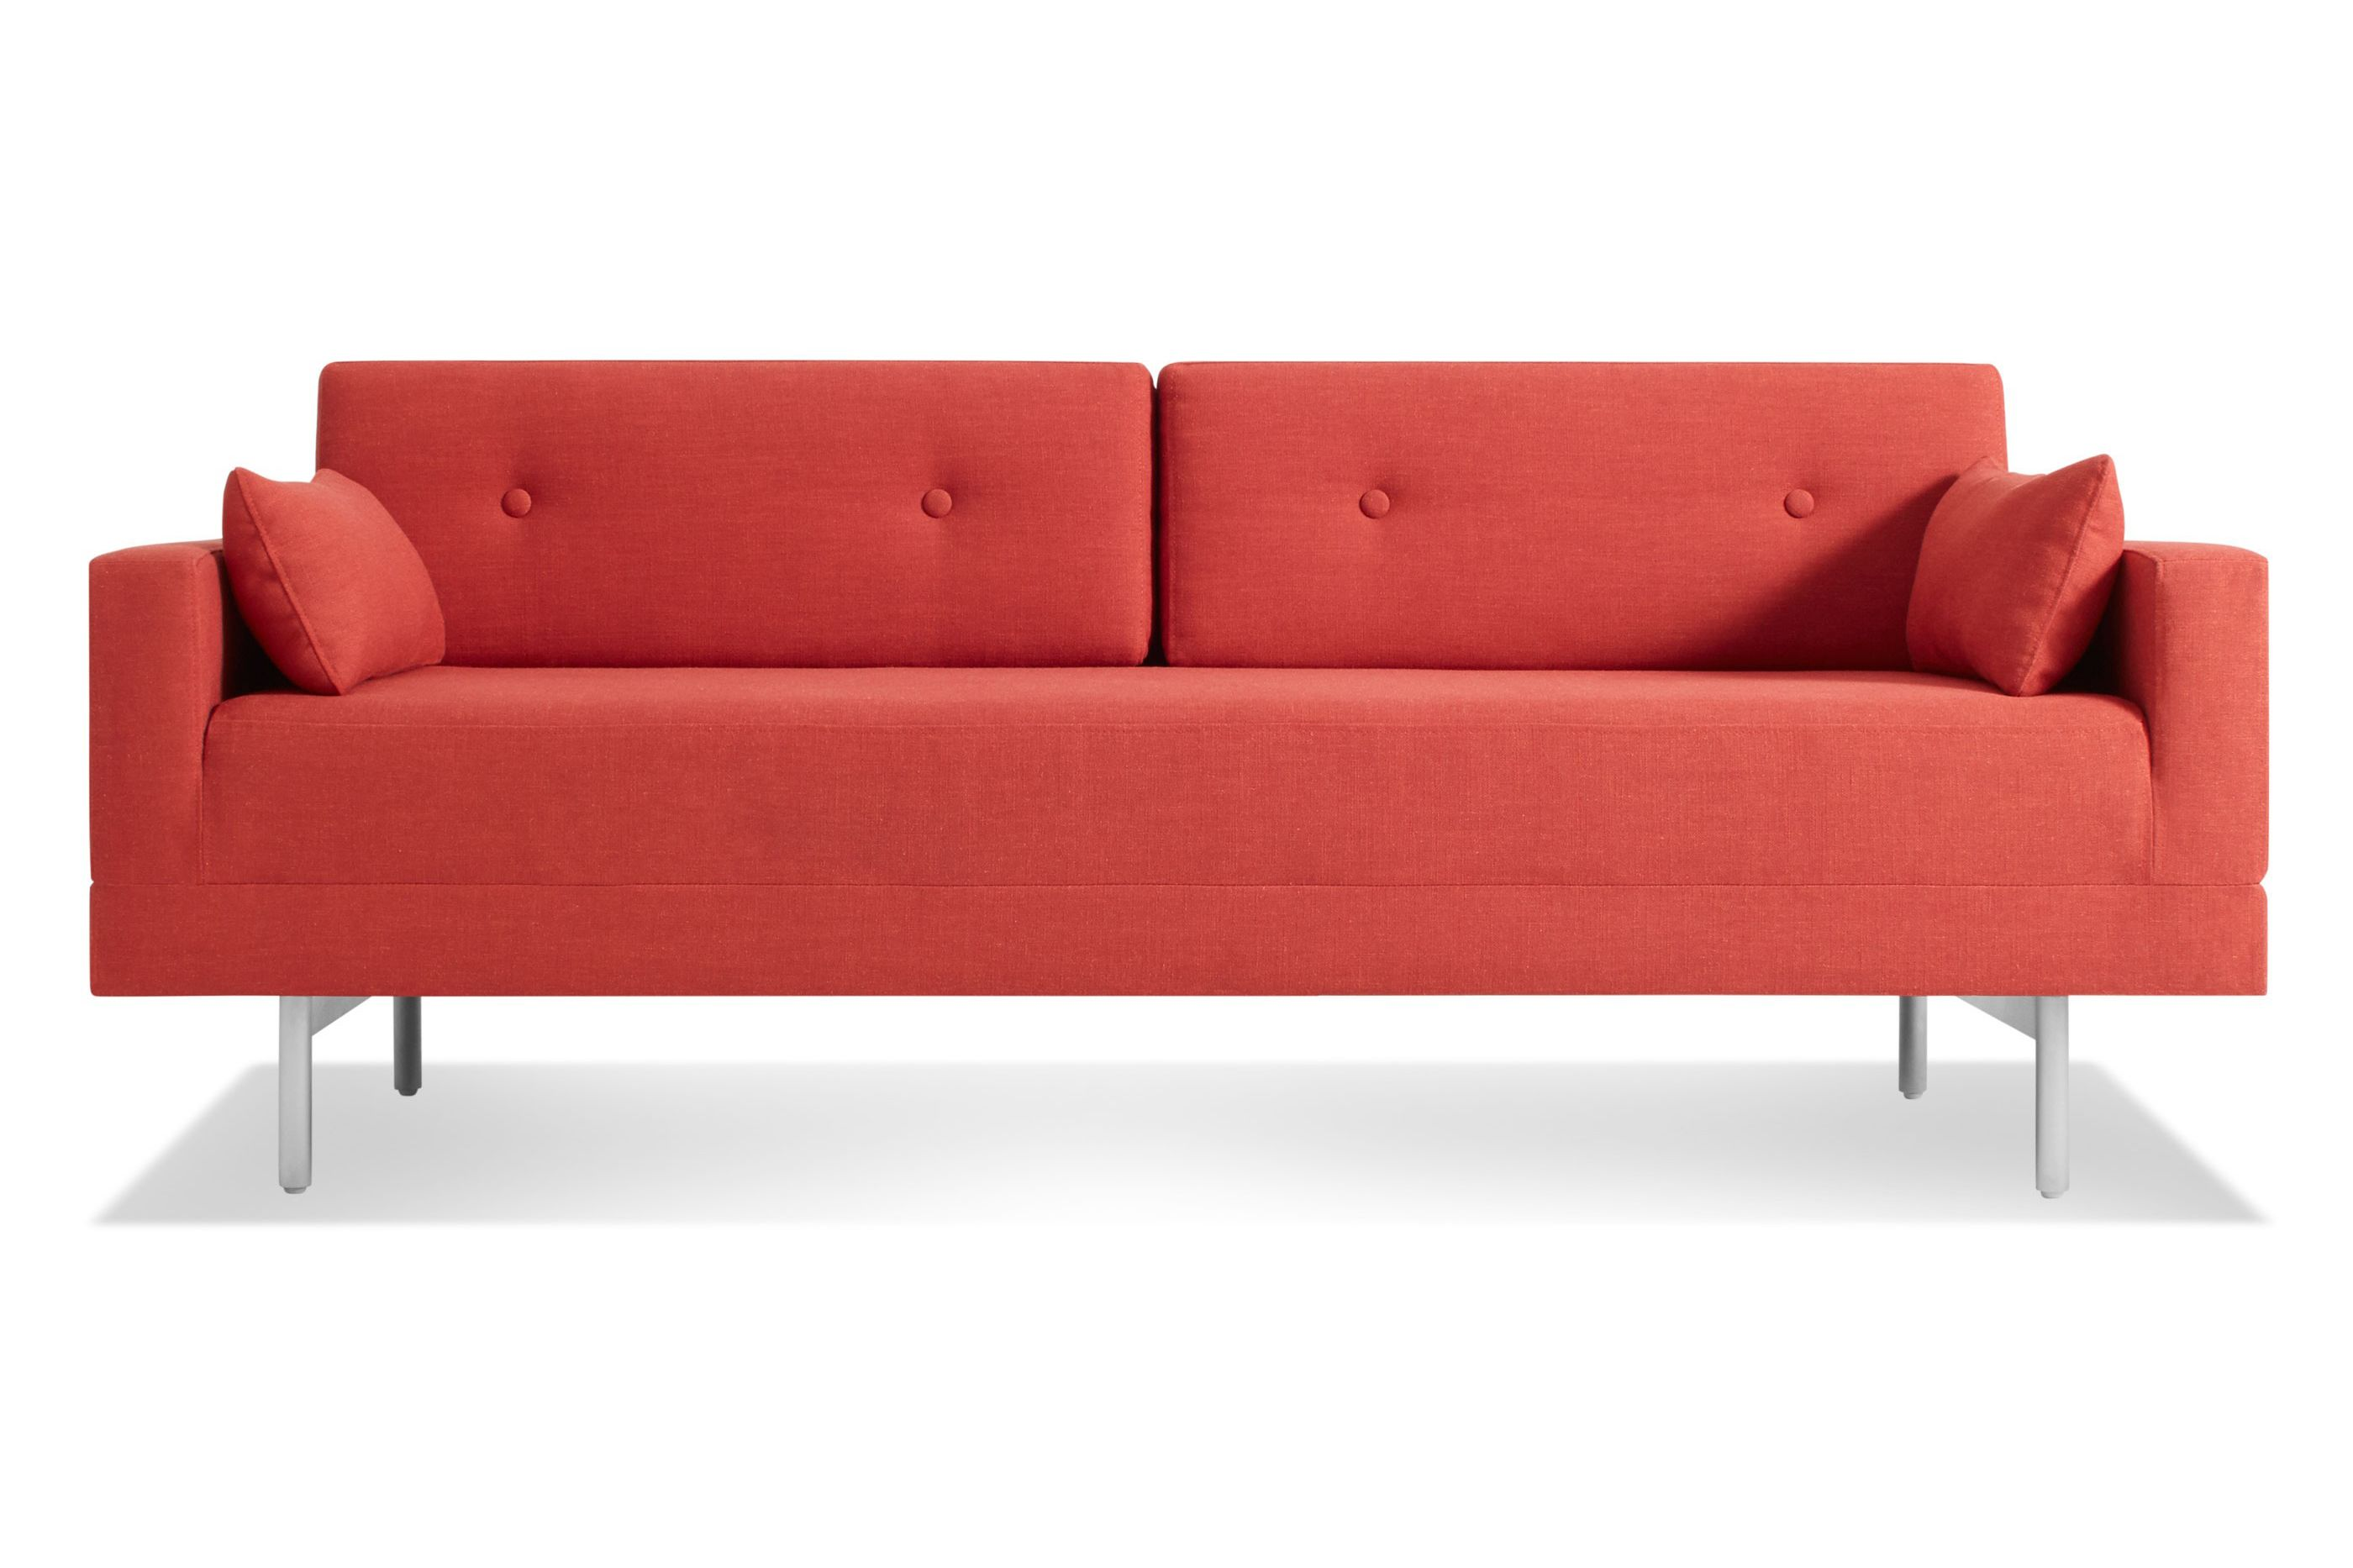 Reviewed: The Most Comfortable Sofas At Blu Dot